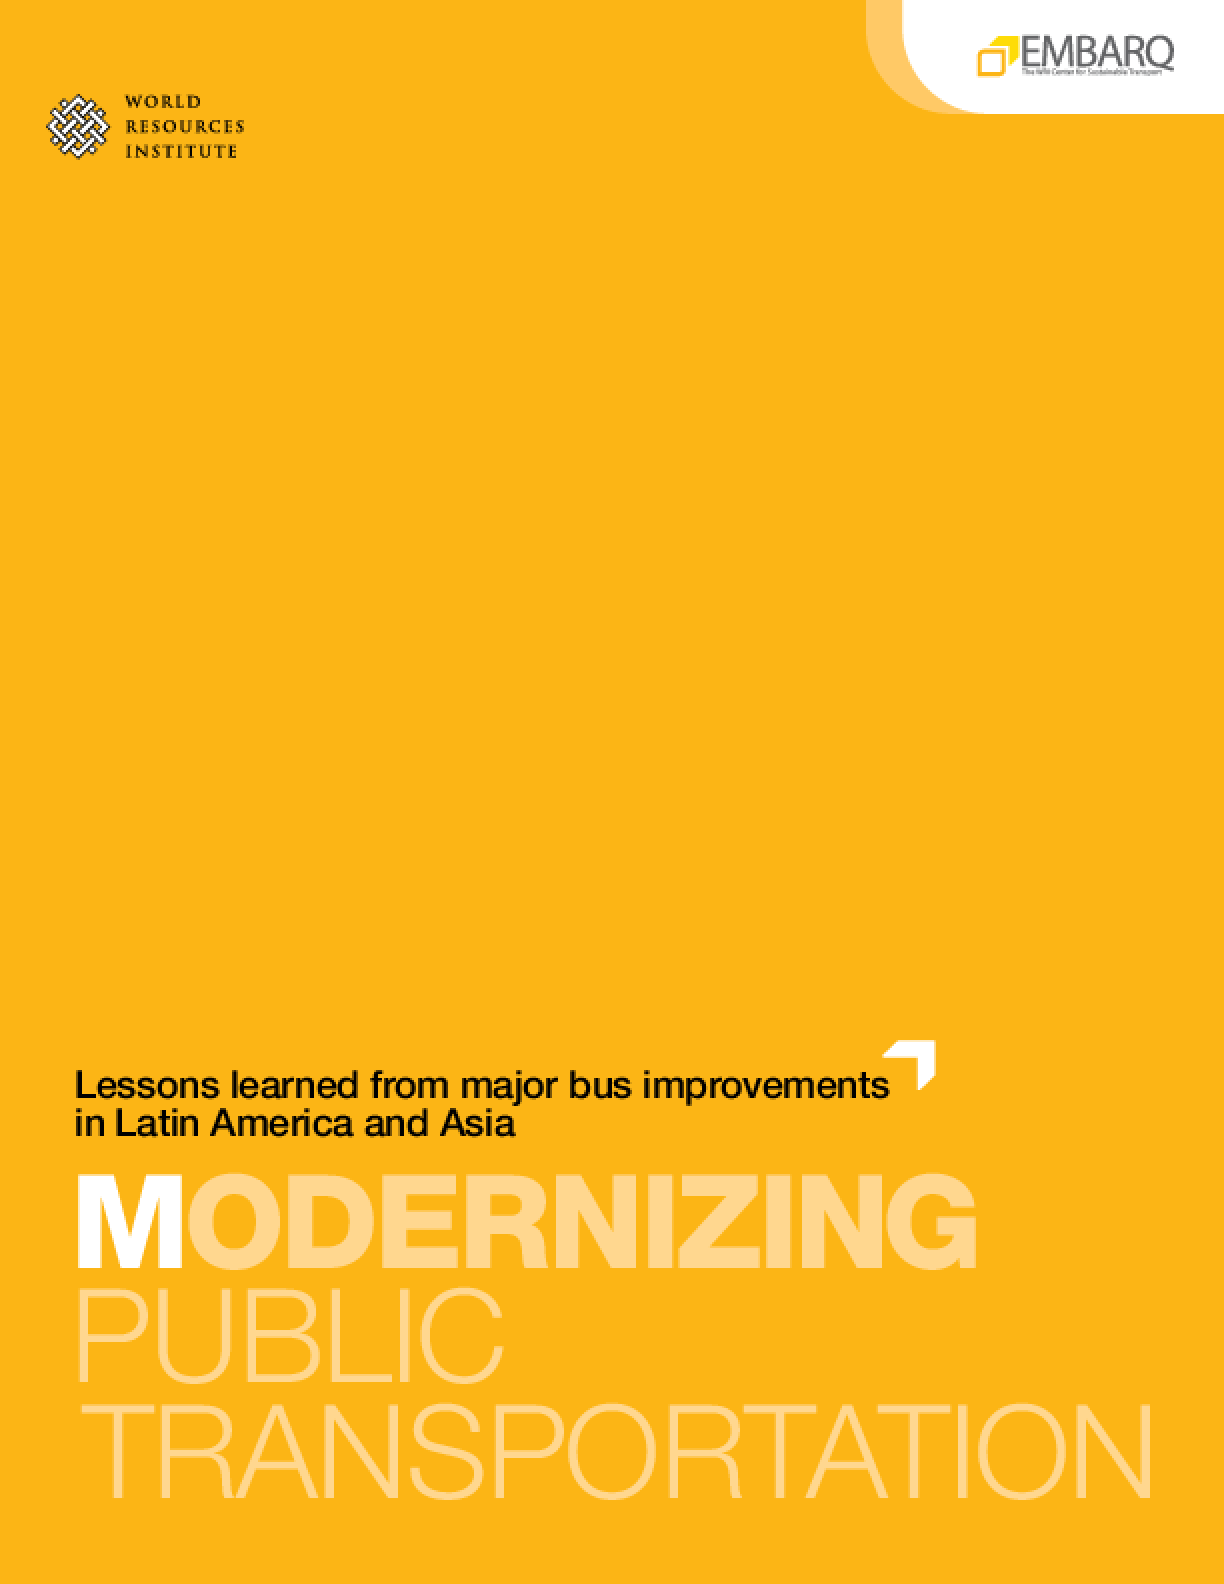 Modernizing Public Transportation: Lessons Learned From Major Bus Improvements in Latin America and Asia